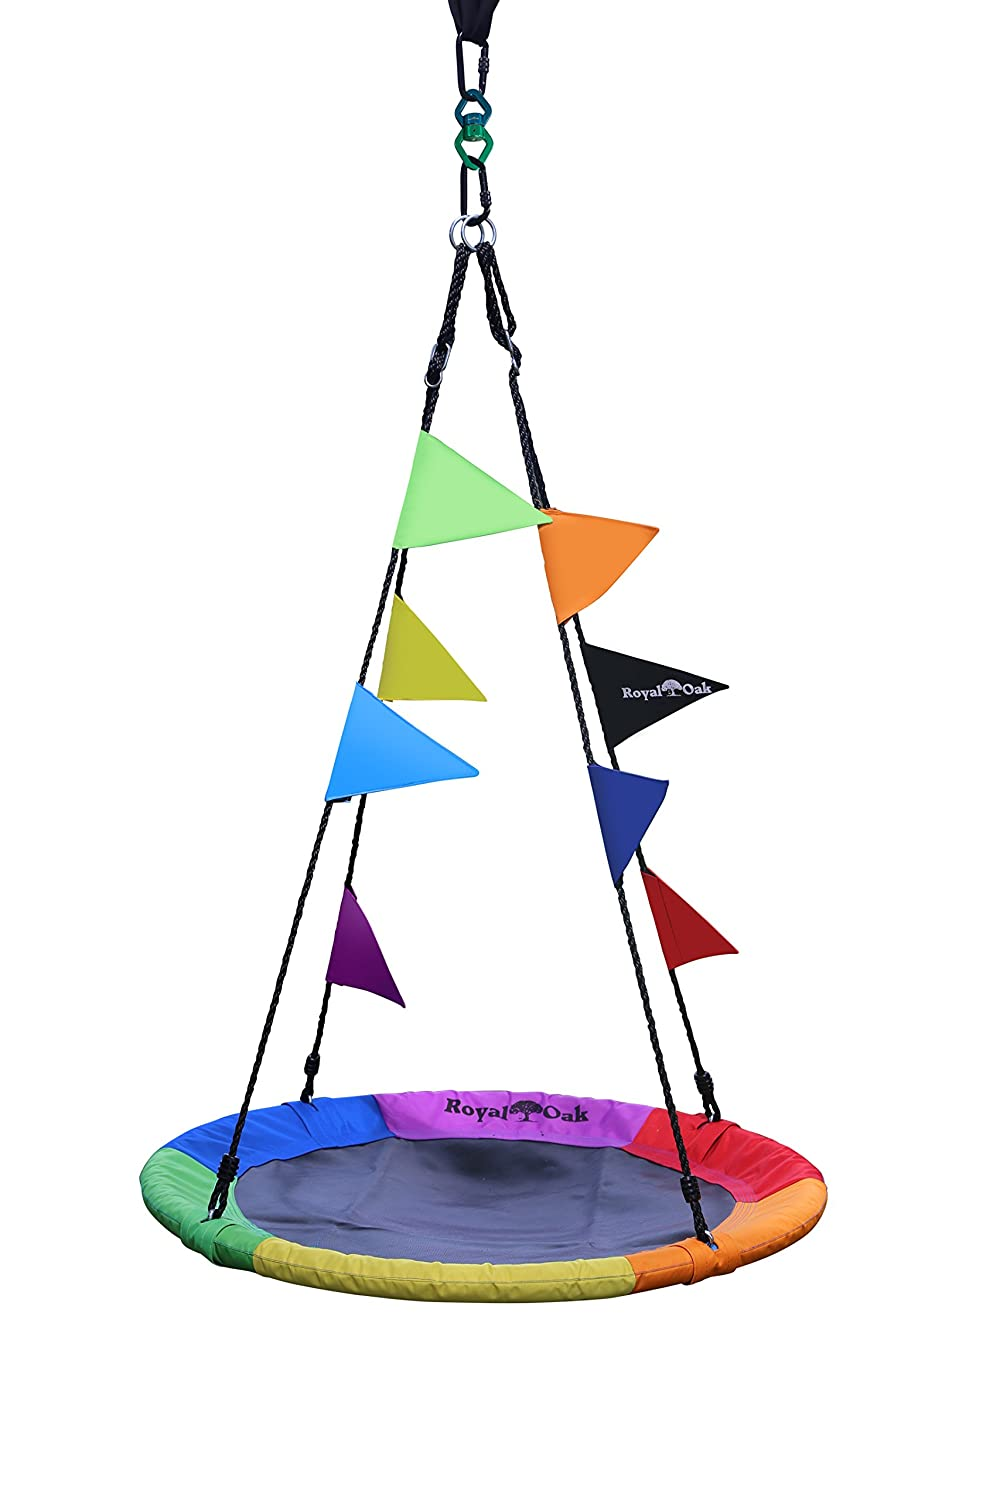 Tire Swings Royal Oak Colorful Rainbow Flags for Saucer Swing Great for Parties and Events Durable Material Weather Proof